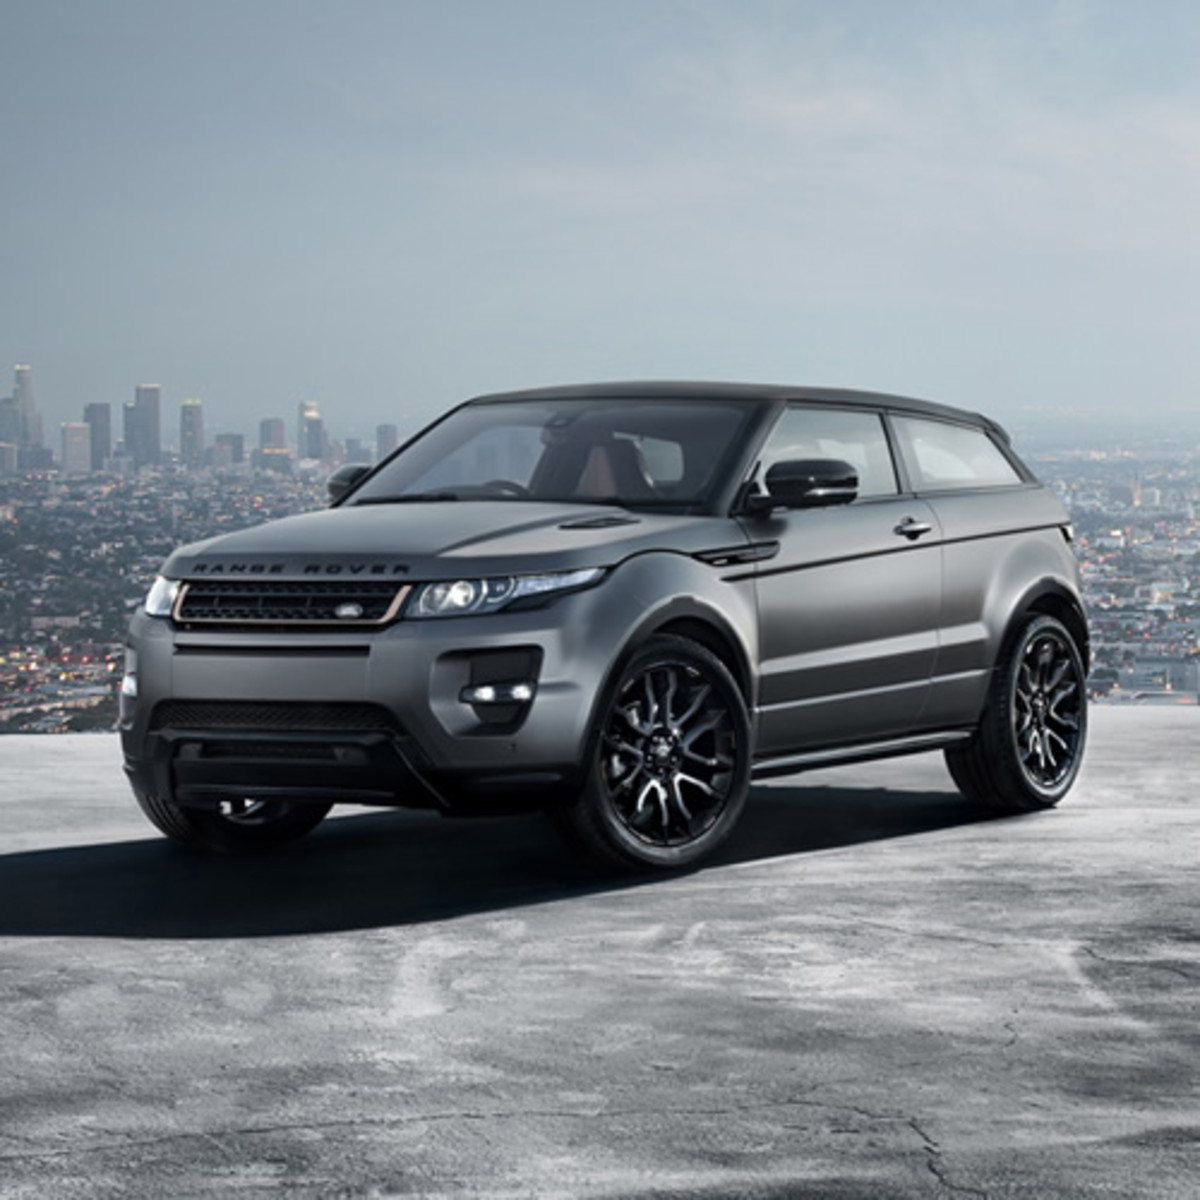 range rover evoque special edition by victoria beckham. Black Bedroom Furniture Sets. Home Design Ideas